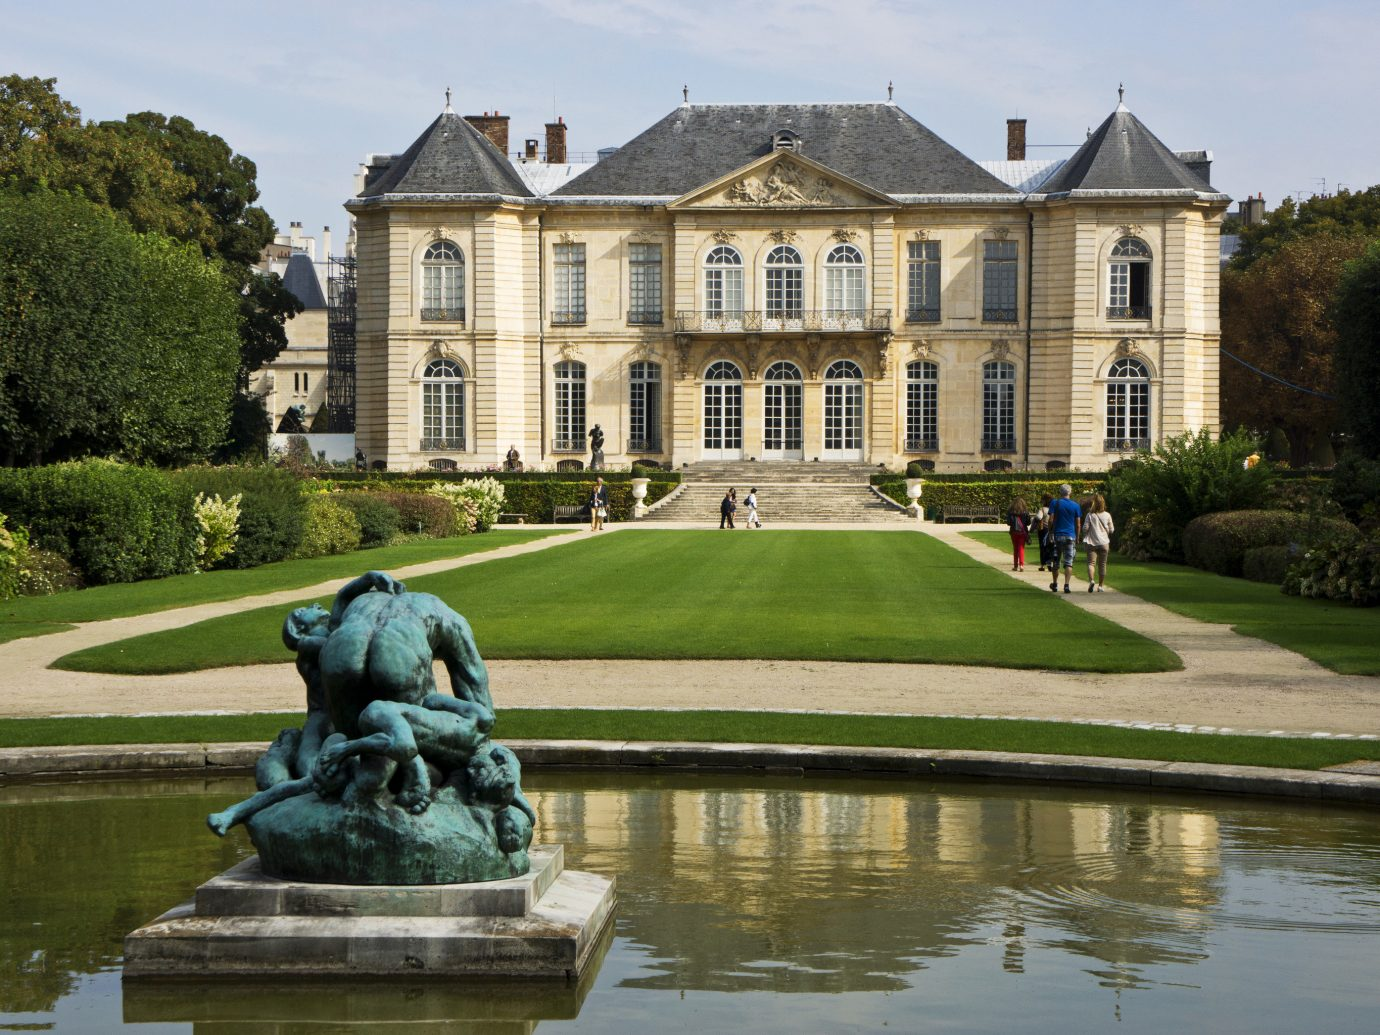 France Paris Trip Ideas outdoor grass water tree sky building stately home château estate Lake pond park castle green reflecting pool home manor house mansion palace Garden lawn waterway old stone